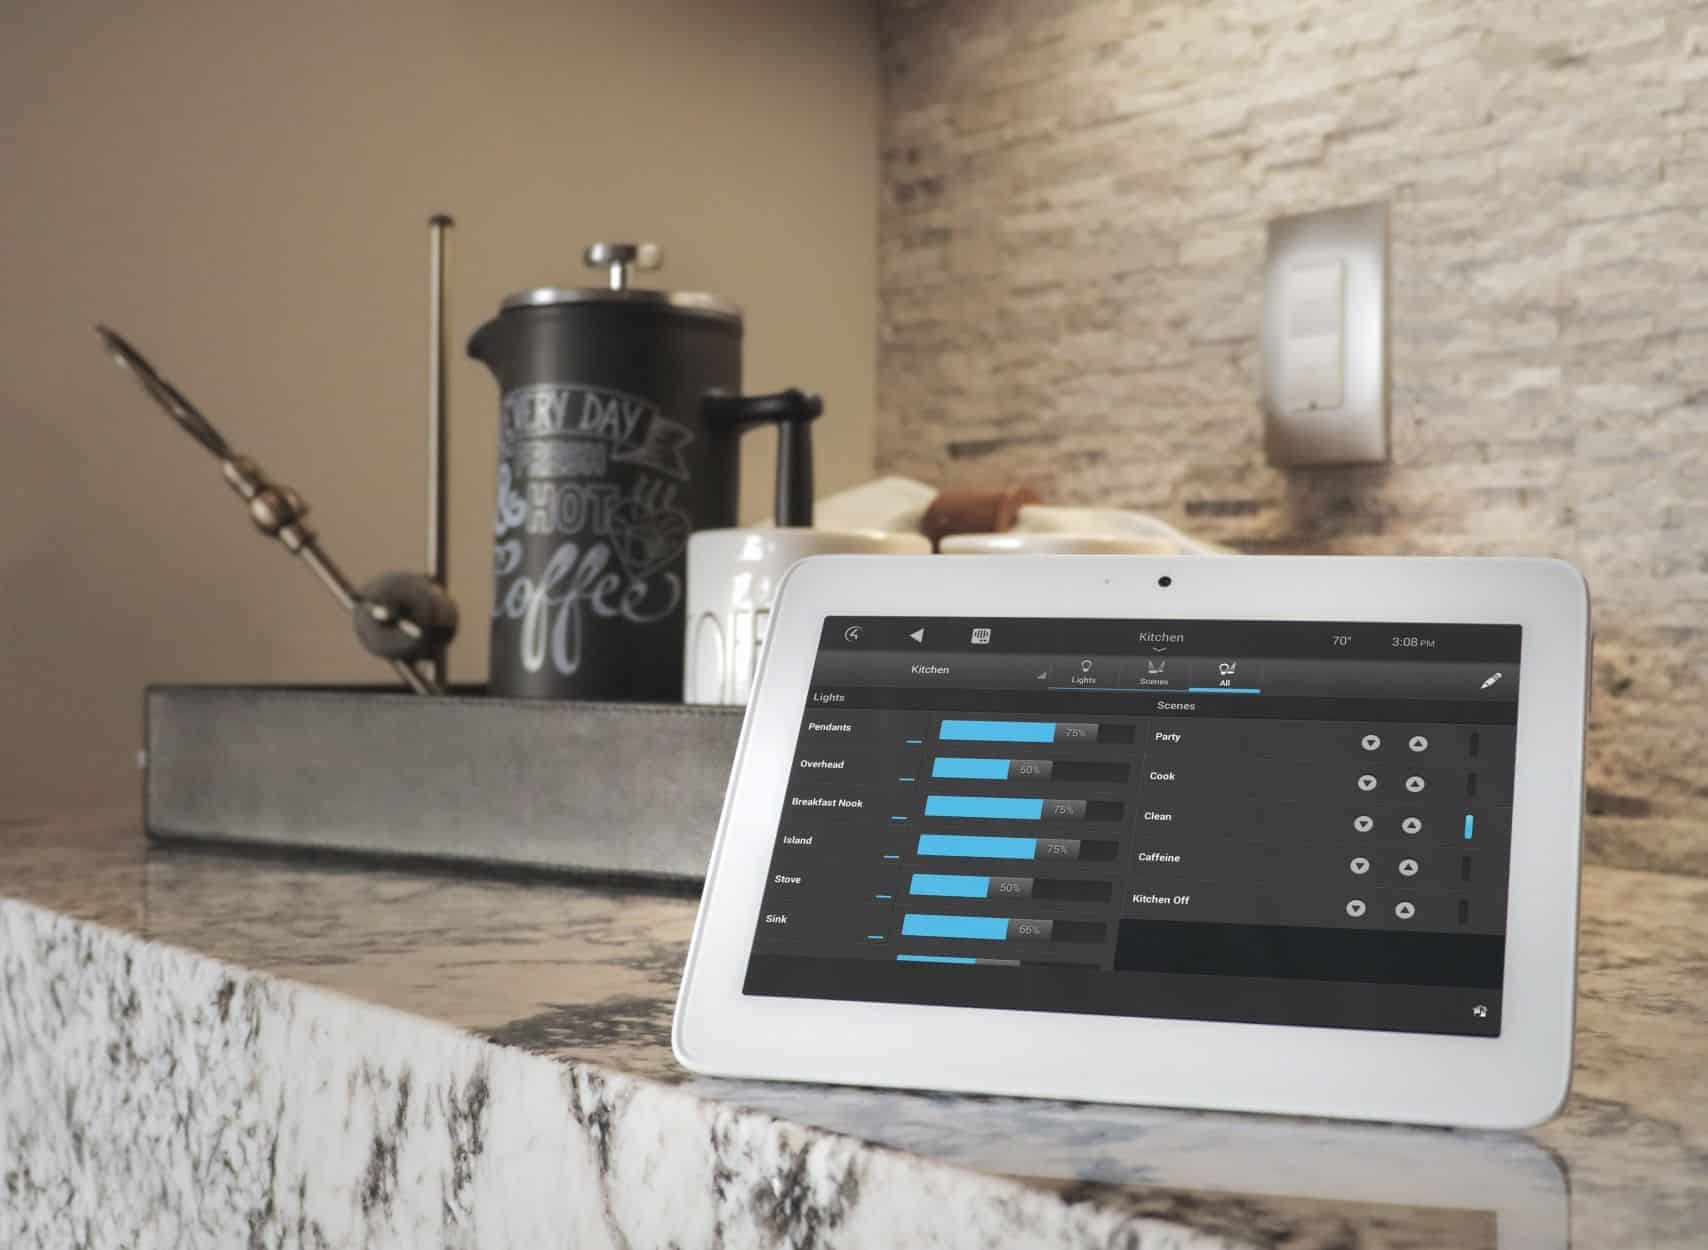 Control4 Touchscreen featuring lighting control throughout a Control4 Smart Home